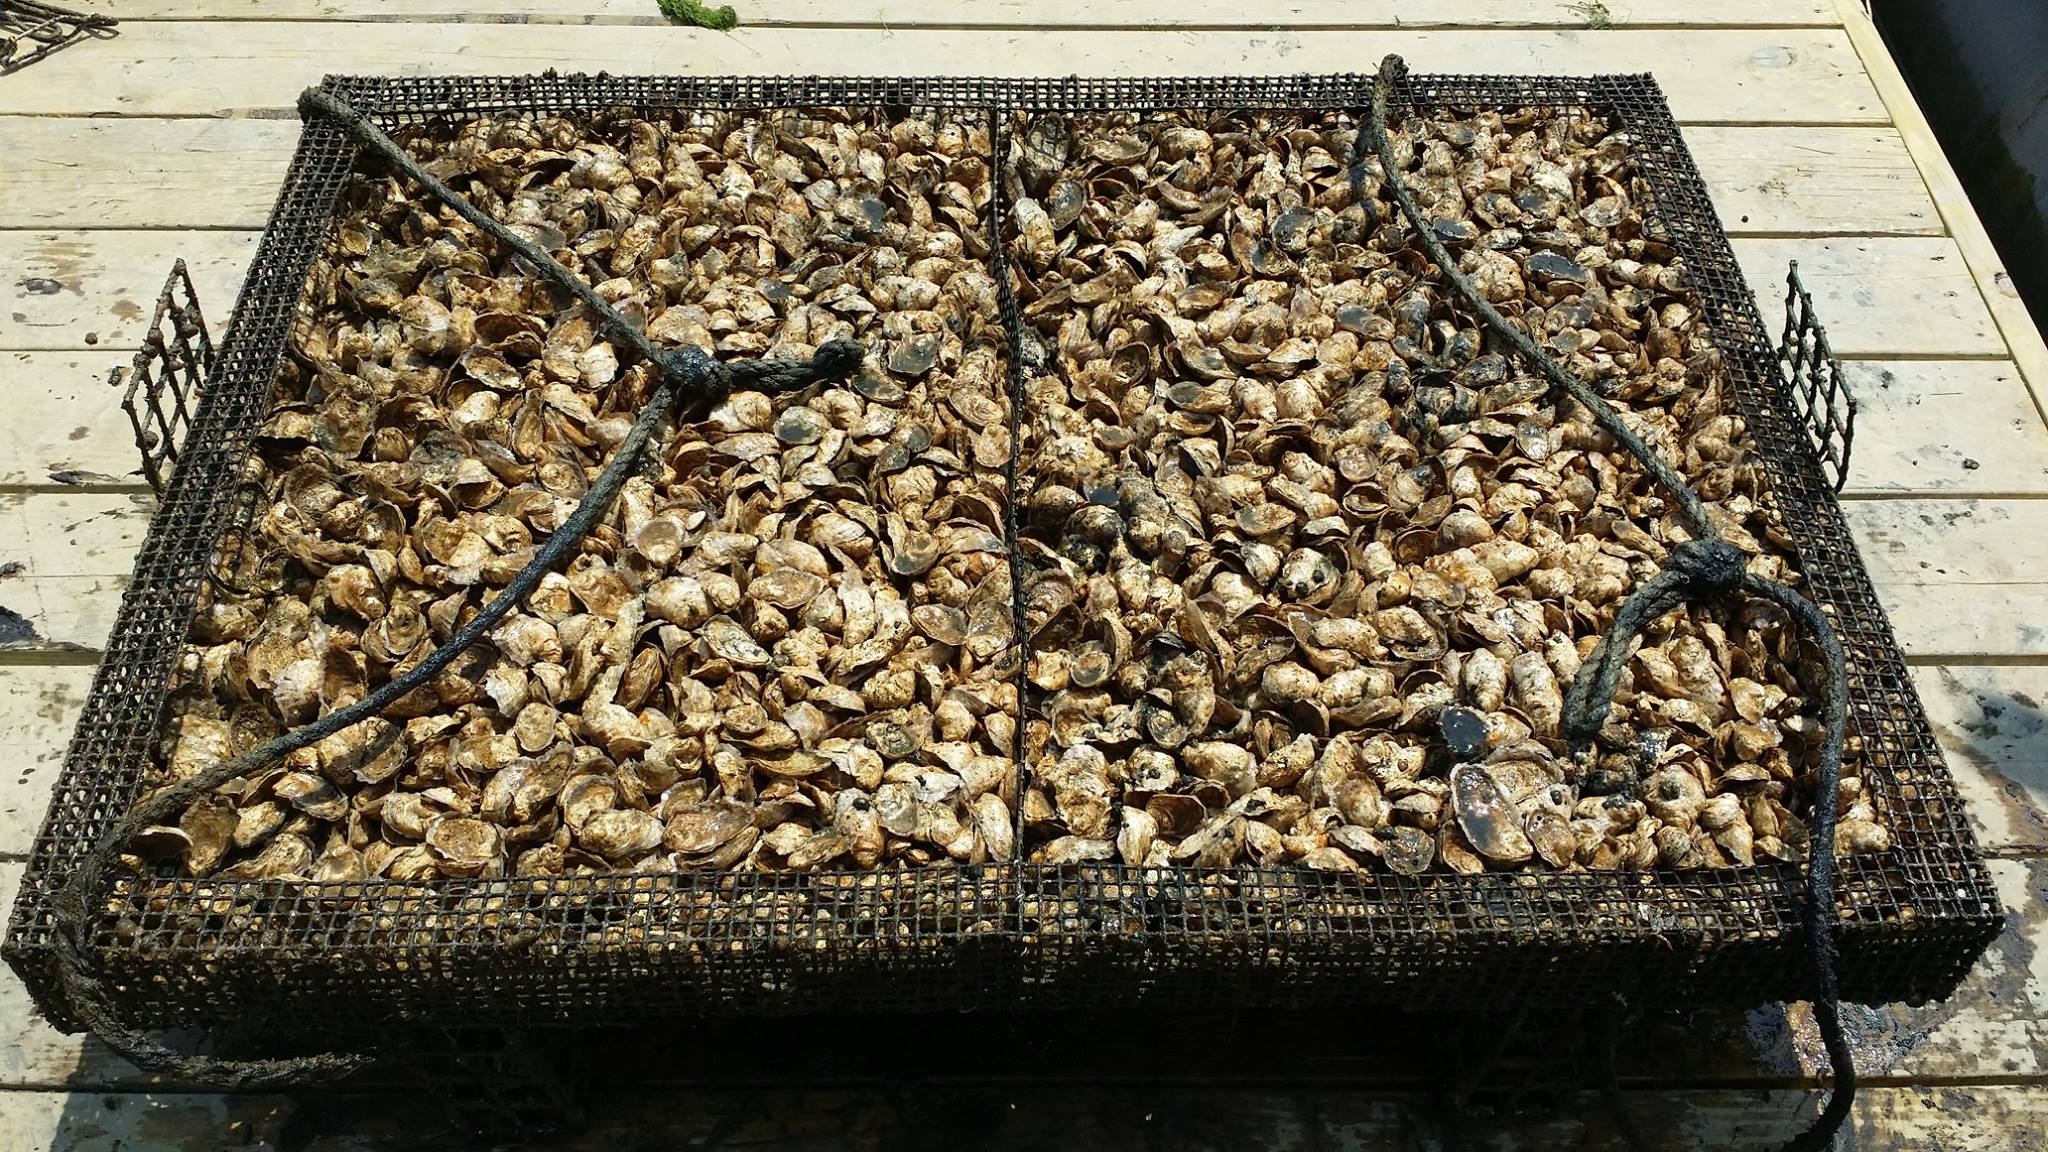 Hollywood's oysters are grown in traps in the Bay (pictured). If macroalgae (seaweed) is grown on a commercial scale near oyster farms, it could serve as a biofilter to remove excess nutrients in the Bay, and can be harvested for marketable